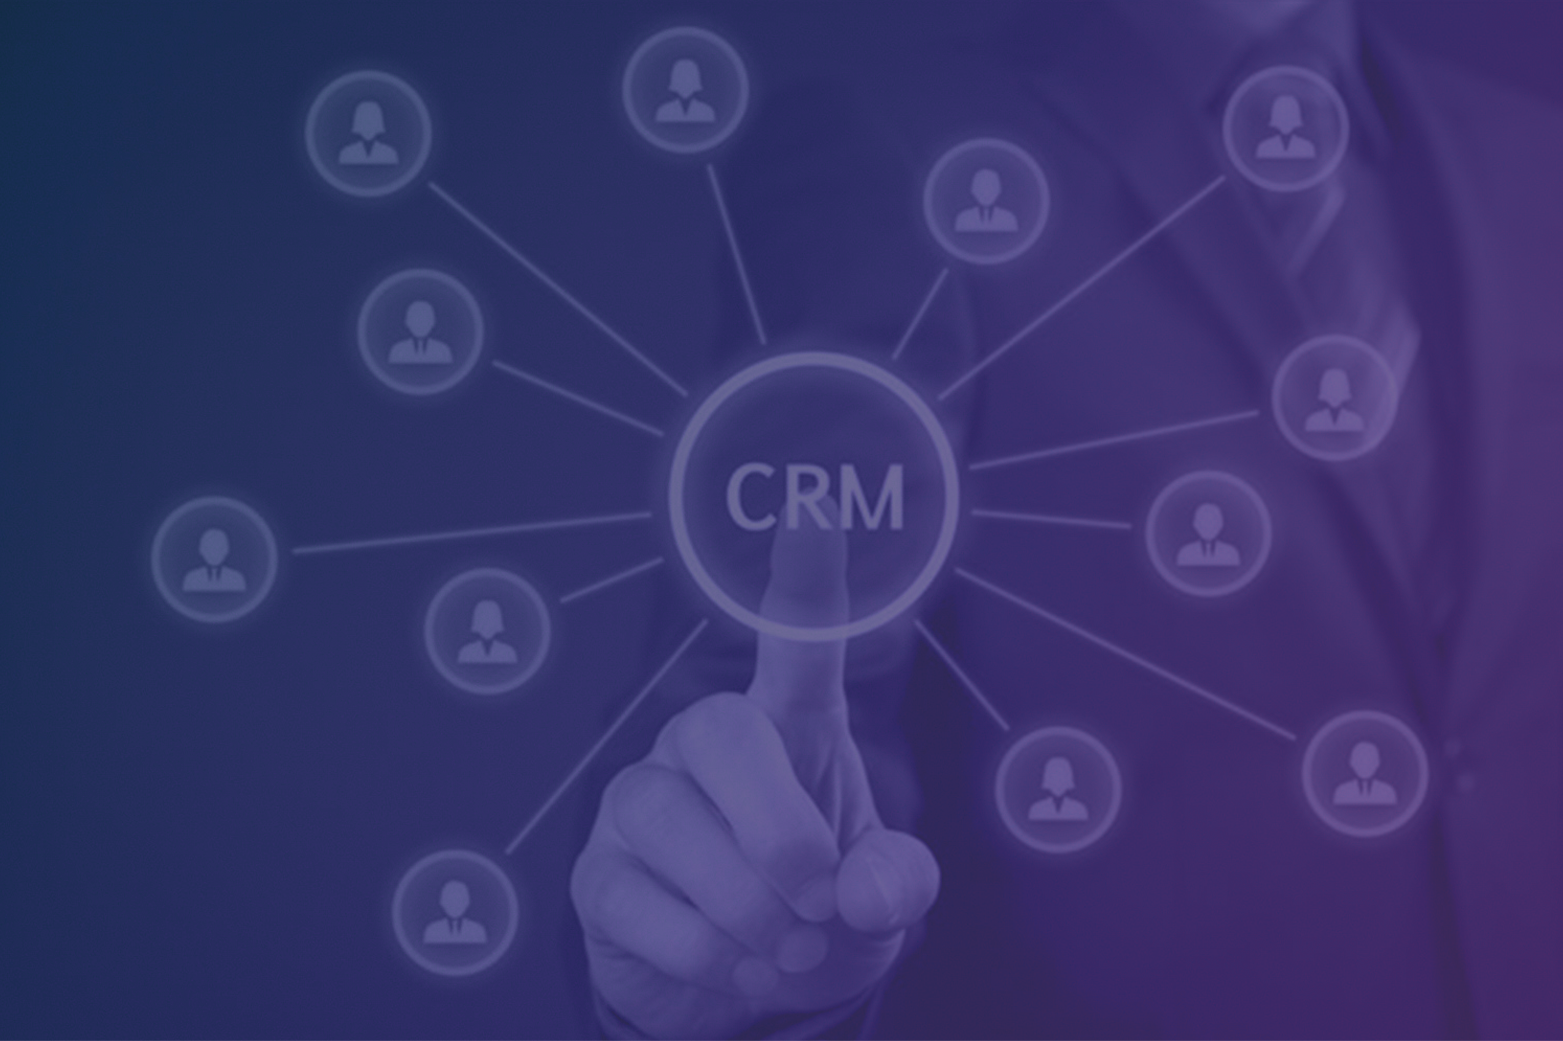 CRM- How do businesses usually manage CRM?